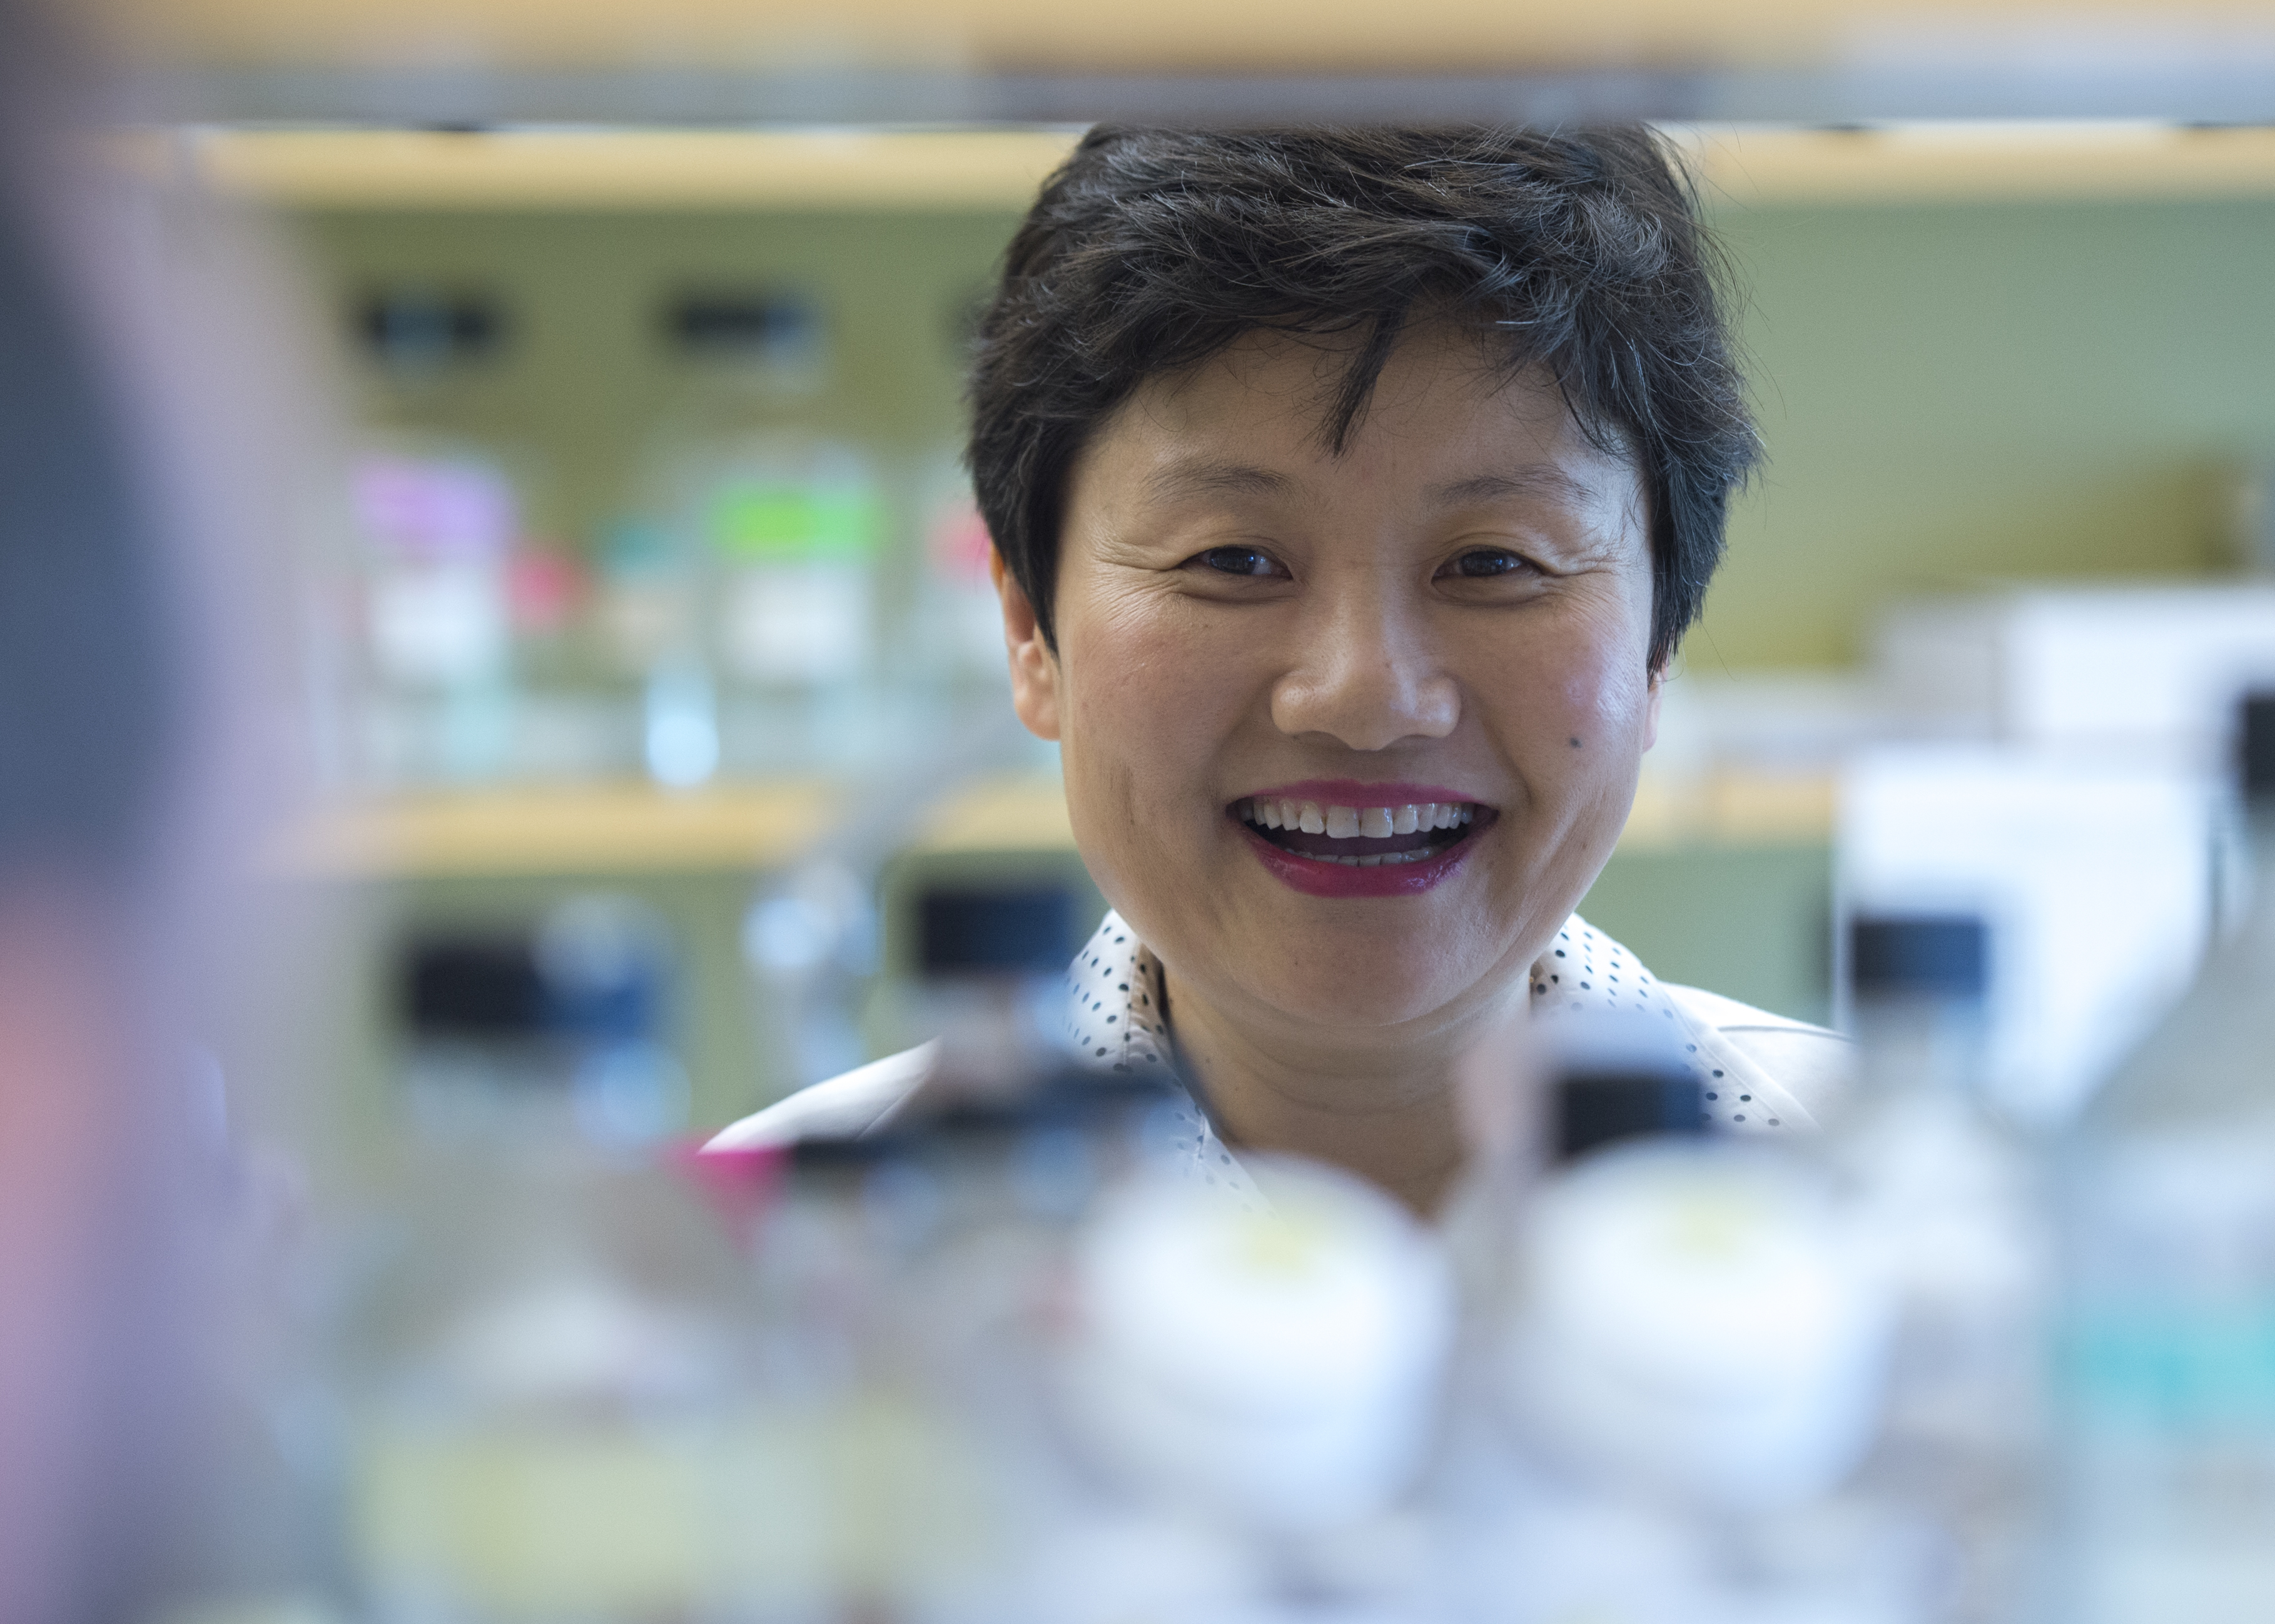 Amy Tang, PhD smiles beautifully through a lab bench as she watches her students learn by doing.